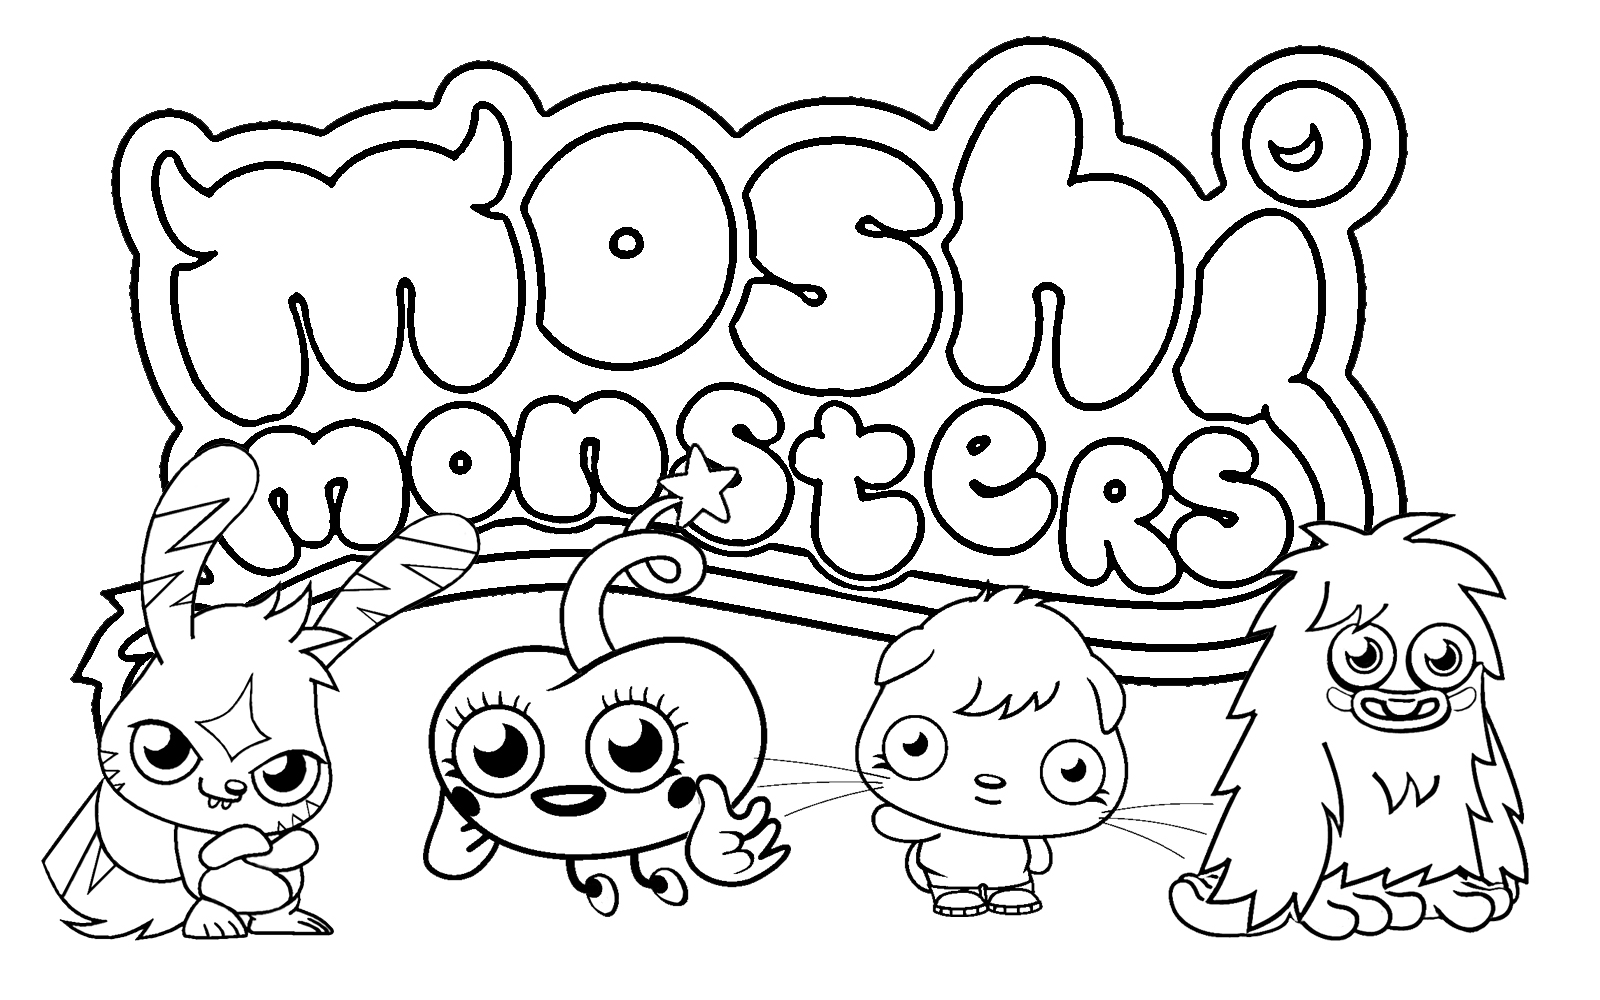 monster coloring pages for kids printable free printable monster coloring pages for kids cool2bkids monster printable pages for coloring kids